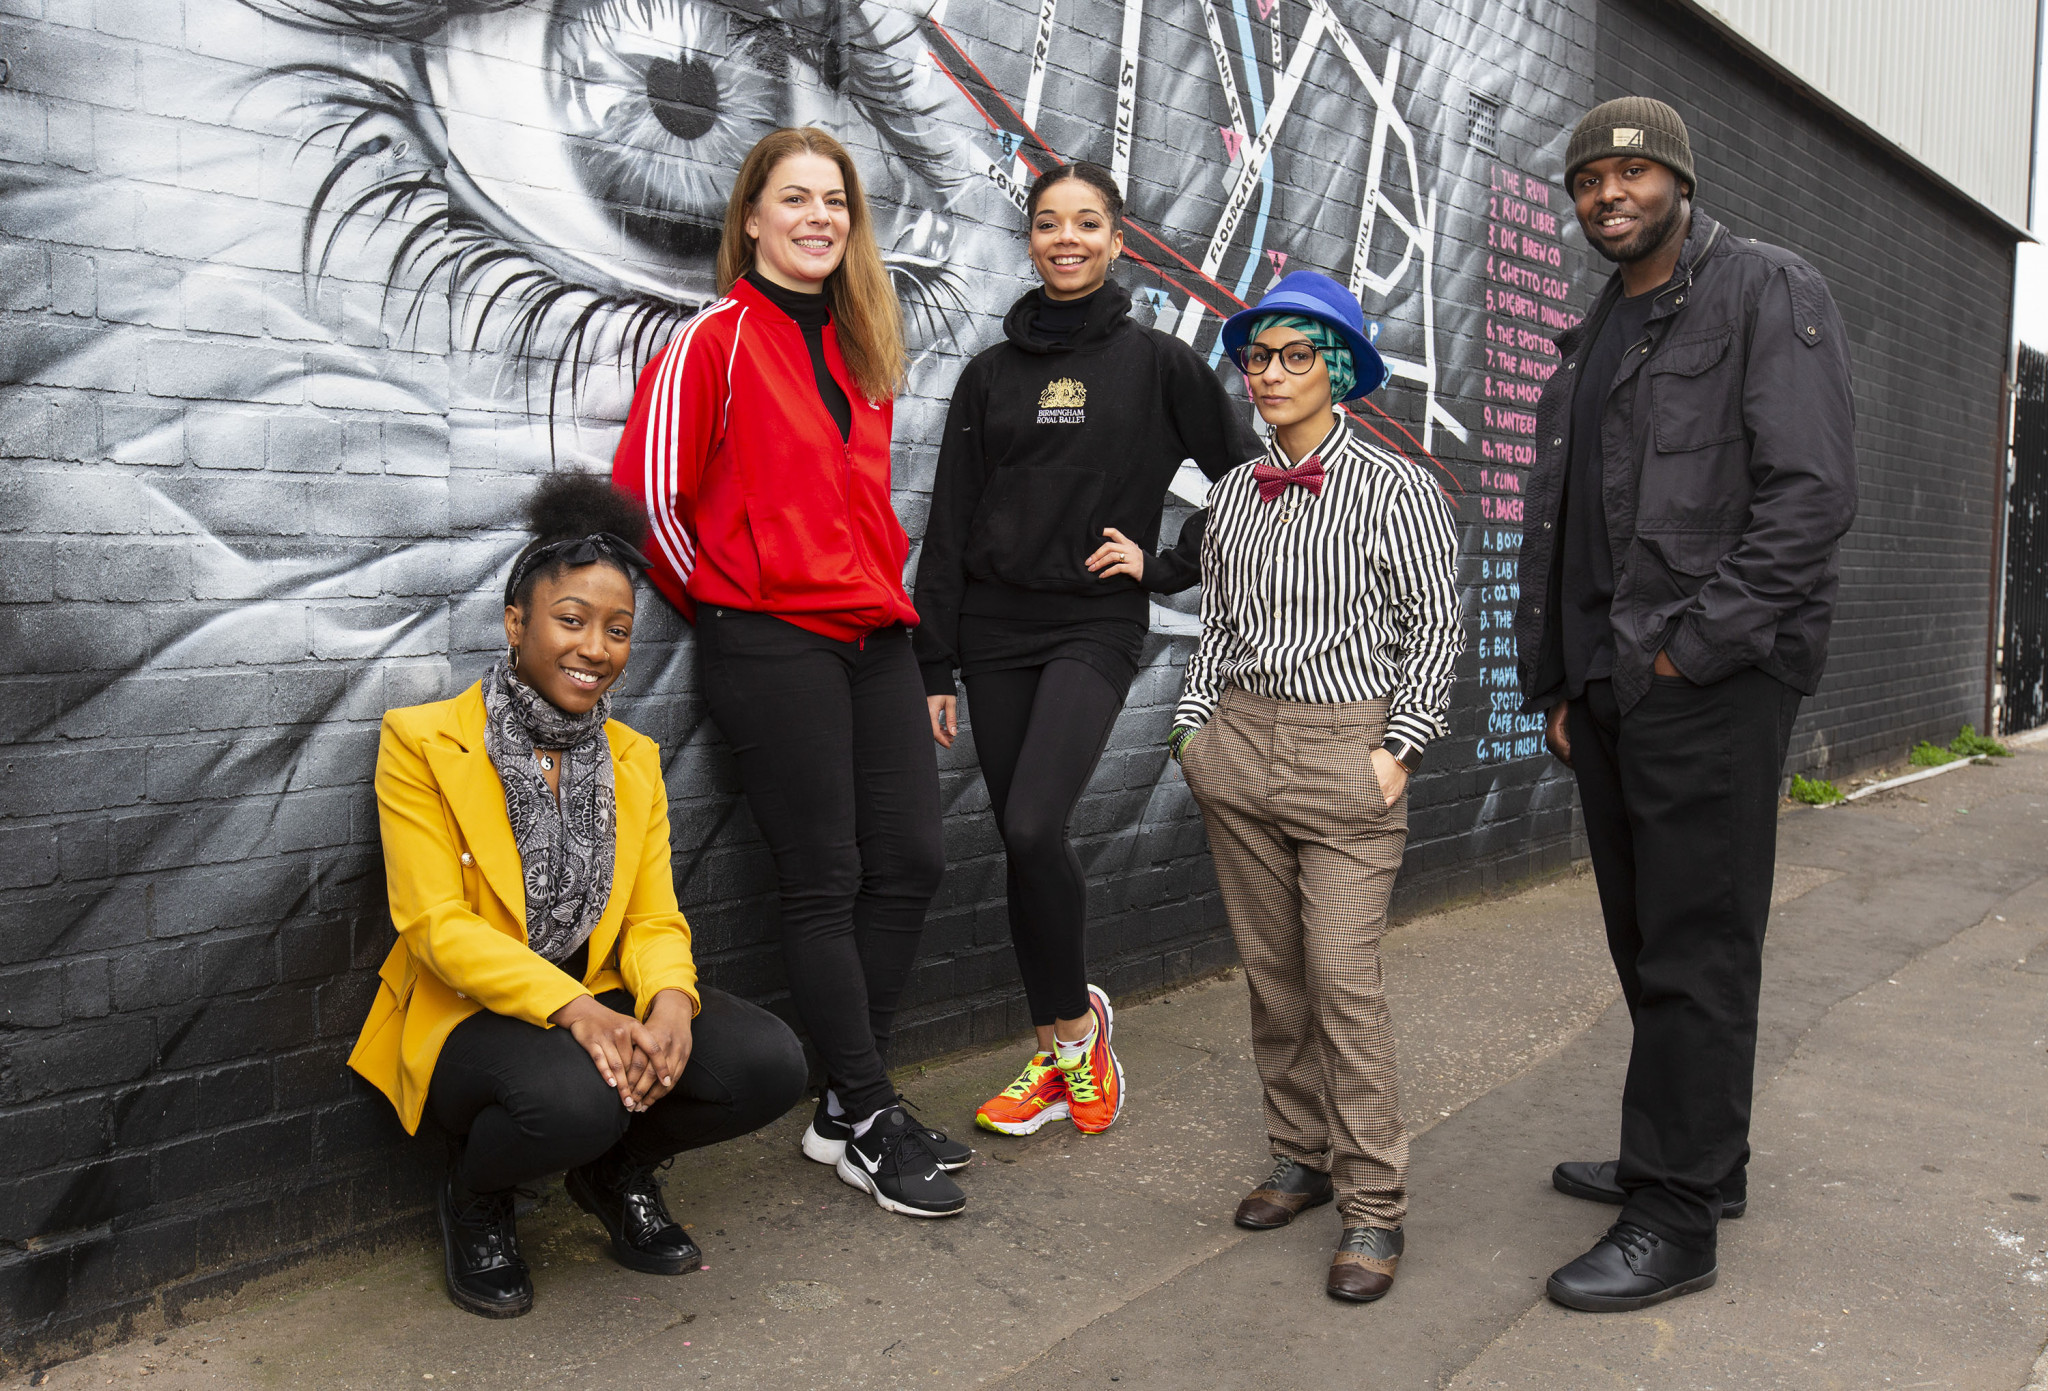 Rap artist Lady Sanity, left, and poet Amerah Saleh, second right, are due to play leading roles in the handover from Gold Coast 2018 to Birmingham 2022 ©Birmingham 2022